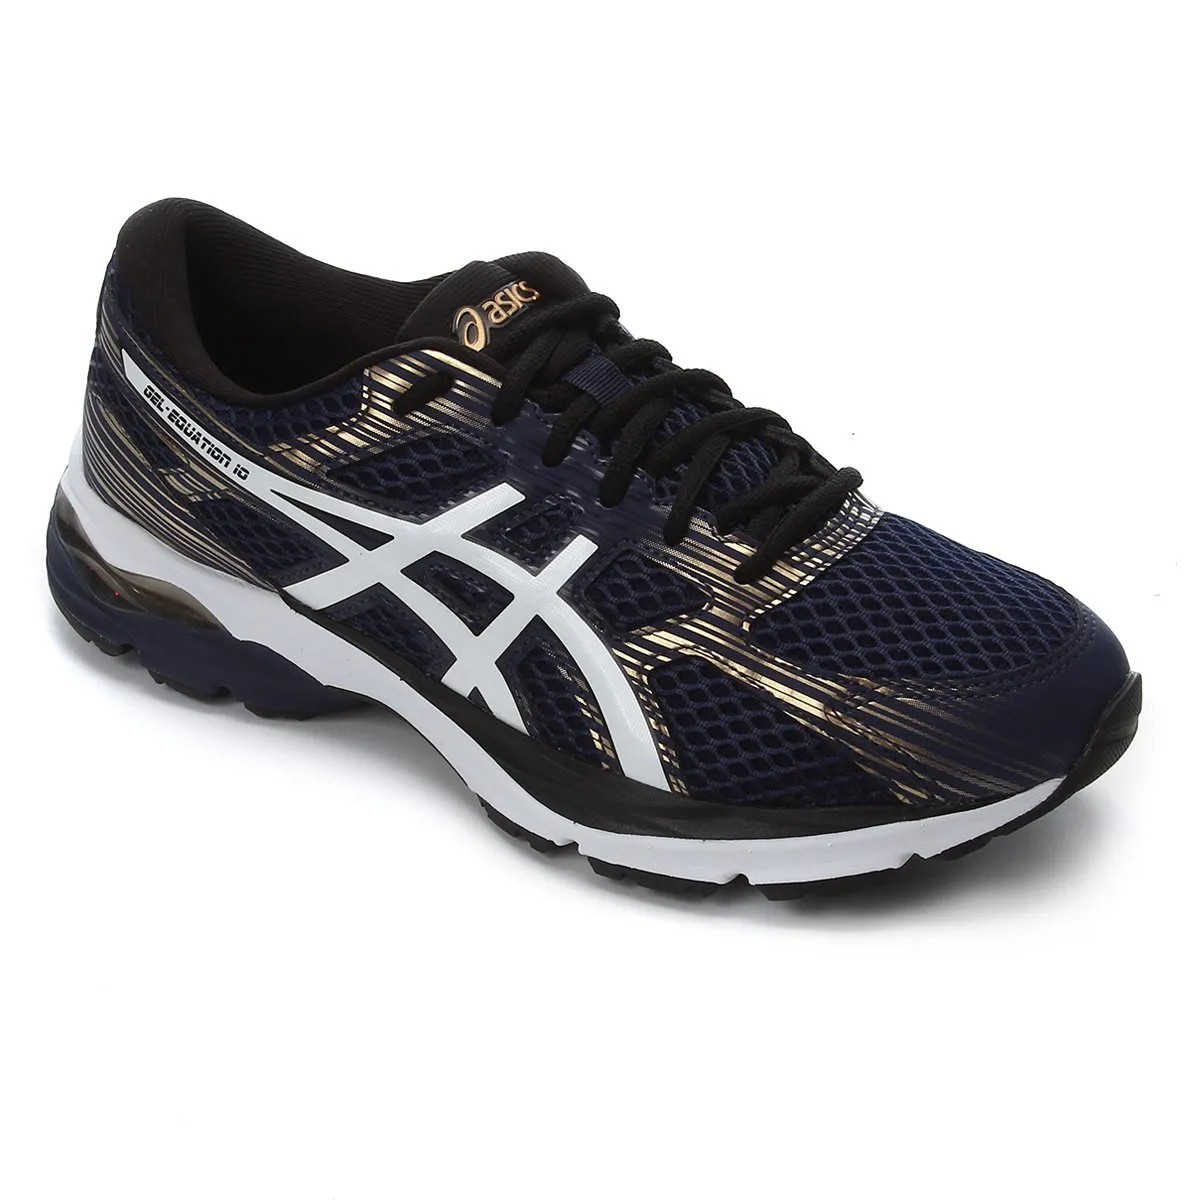 Tenis Masculino Asics Gel Equation 10 - Marinho/Ouro